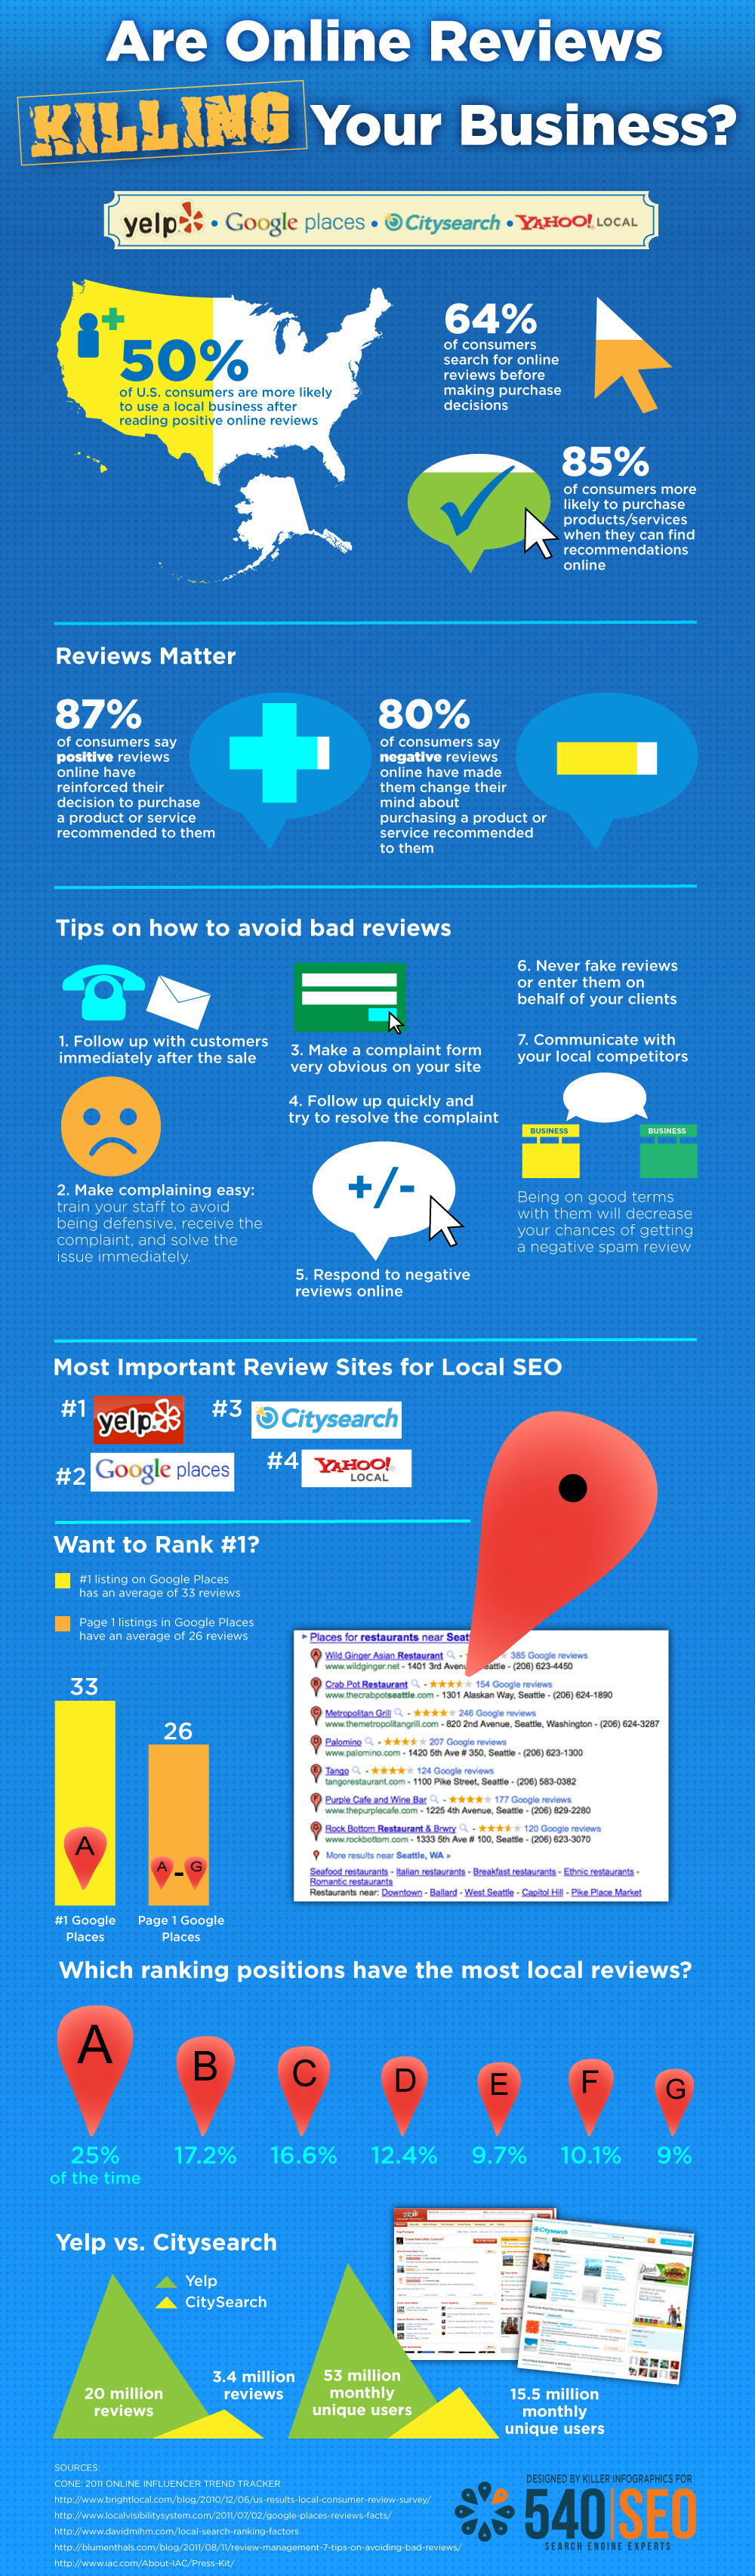 How reviews affect your Google Places visibility